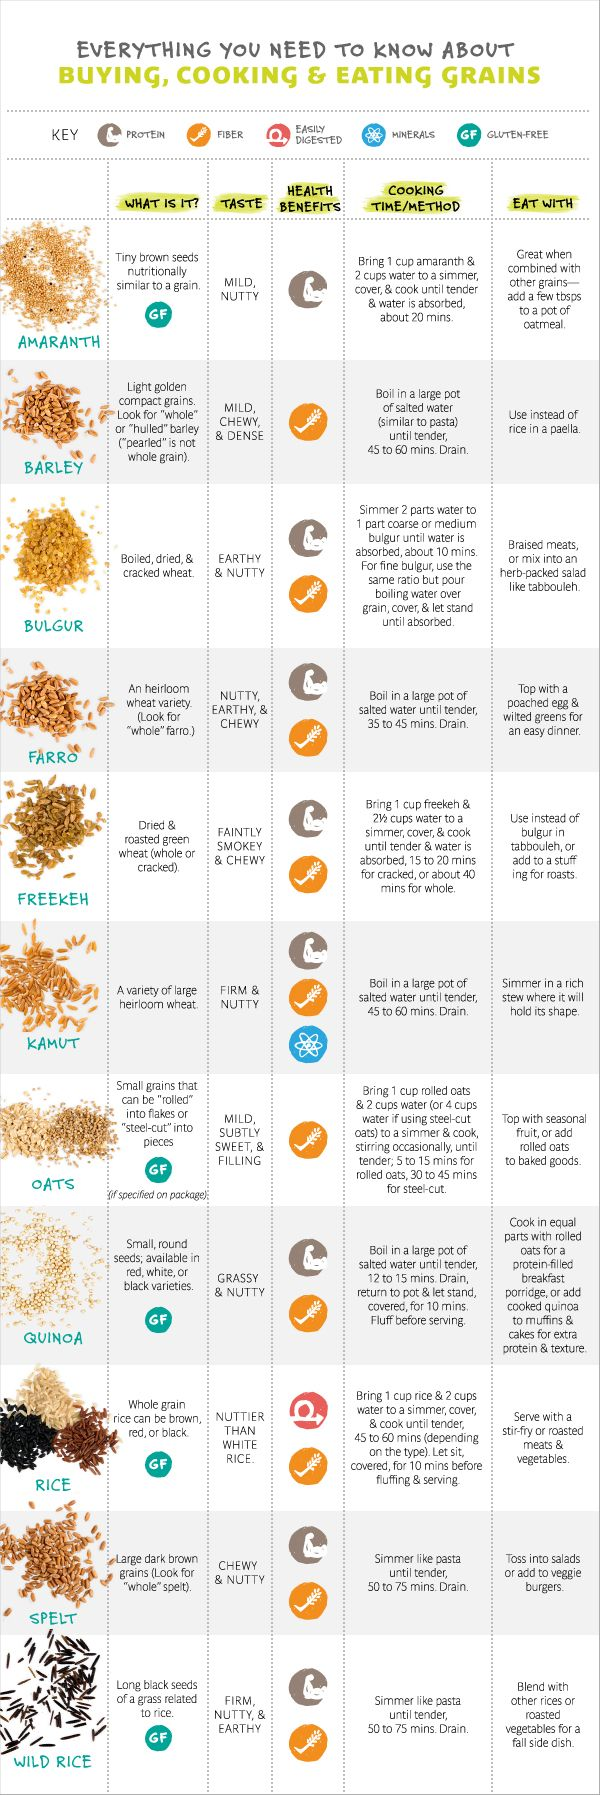 Whole grains—which contain all the parts of a grain you can eat (the bran, germ, and endosperm)—come with some serious health benefits. Unprocessed or minimally processed whole grains can deliver healthy doses of fiber, vitamins, minerals and even protein.